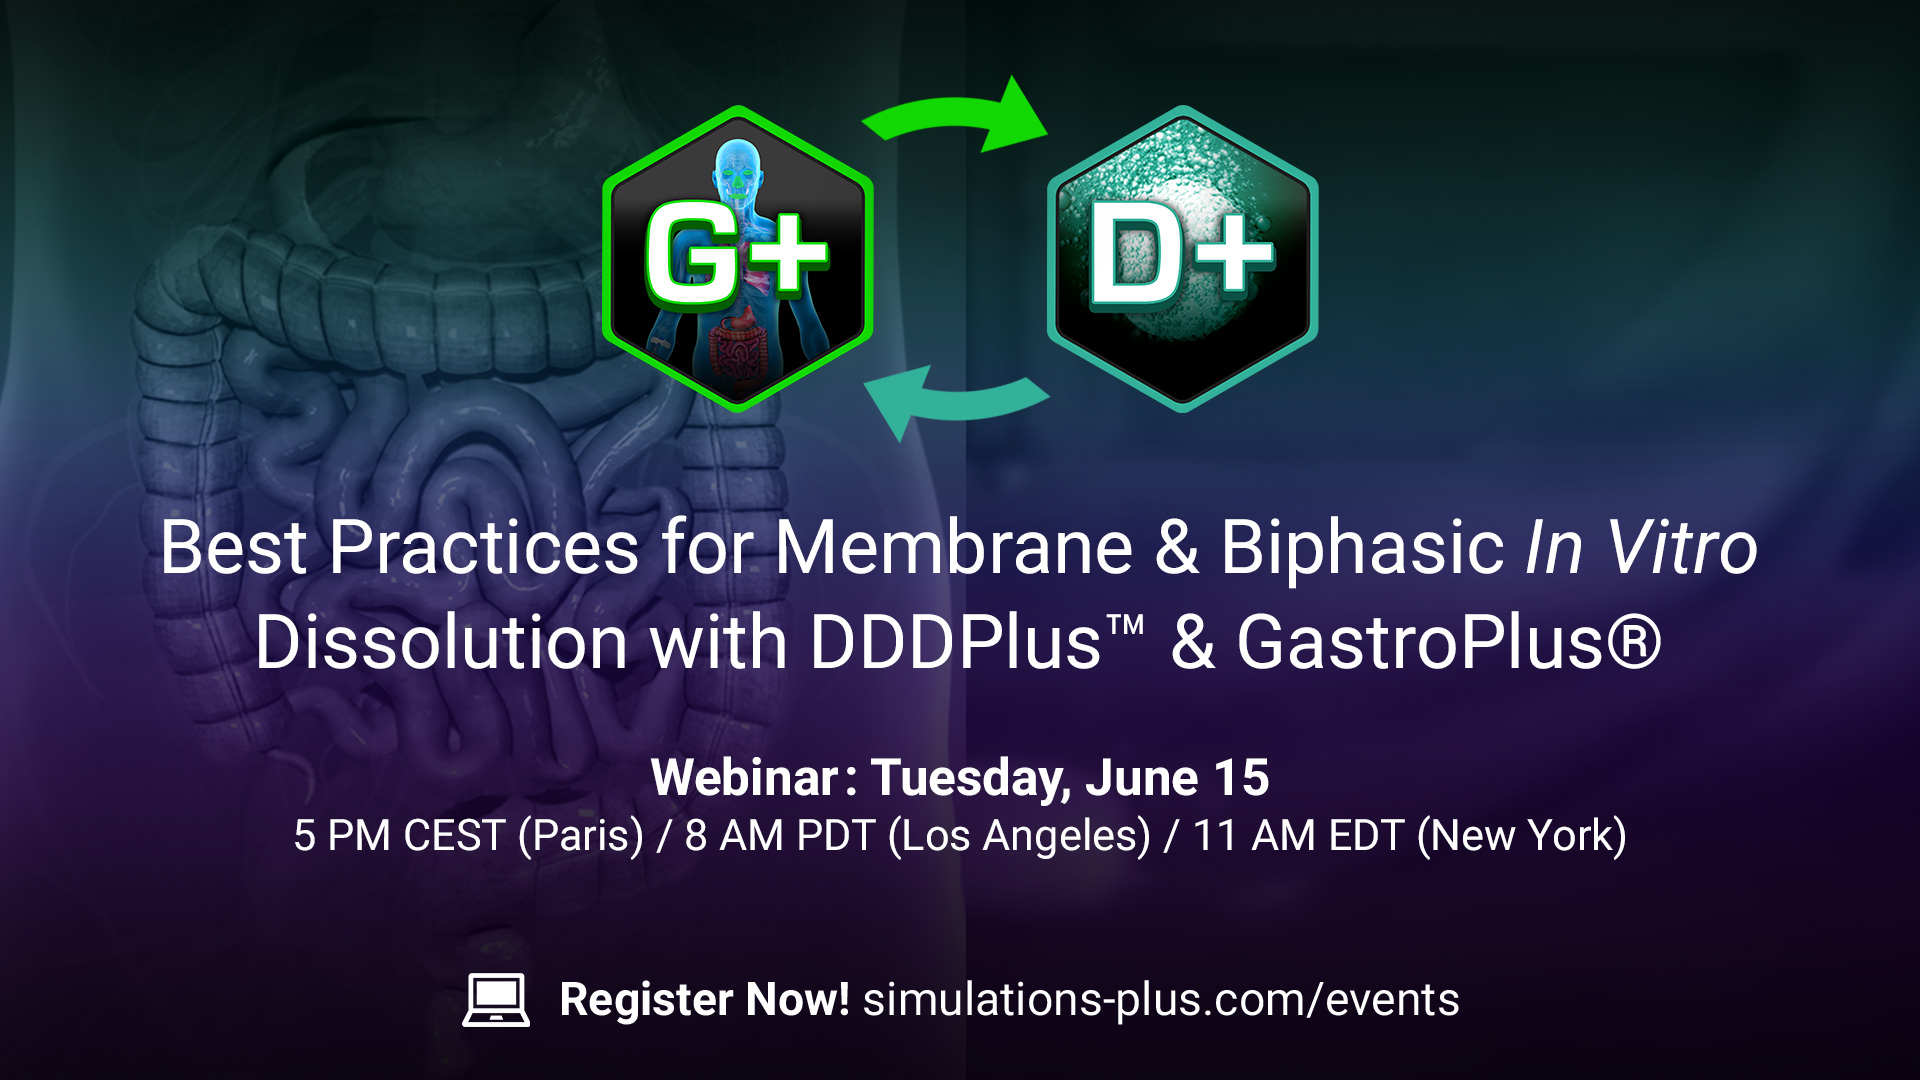 gastroplus DDDPlus webinar best practices for membrance and biphasic in vitro dissolution with DDDPLUS and gastro plus